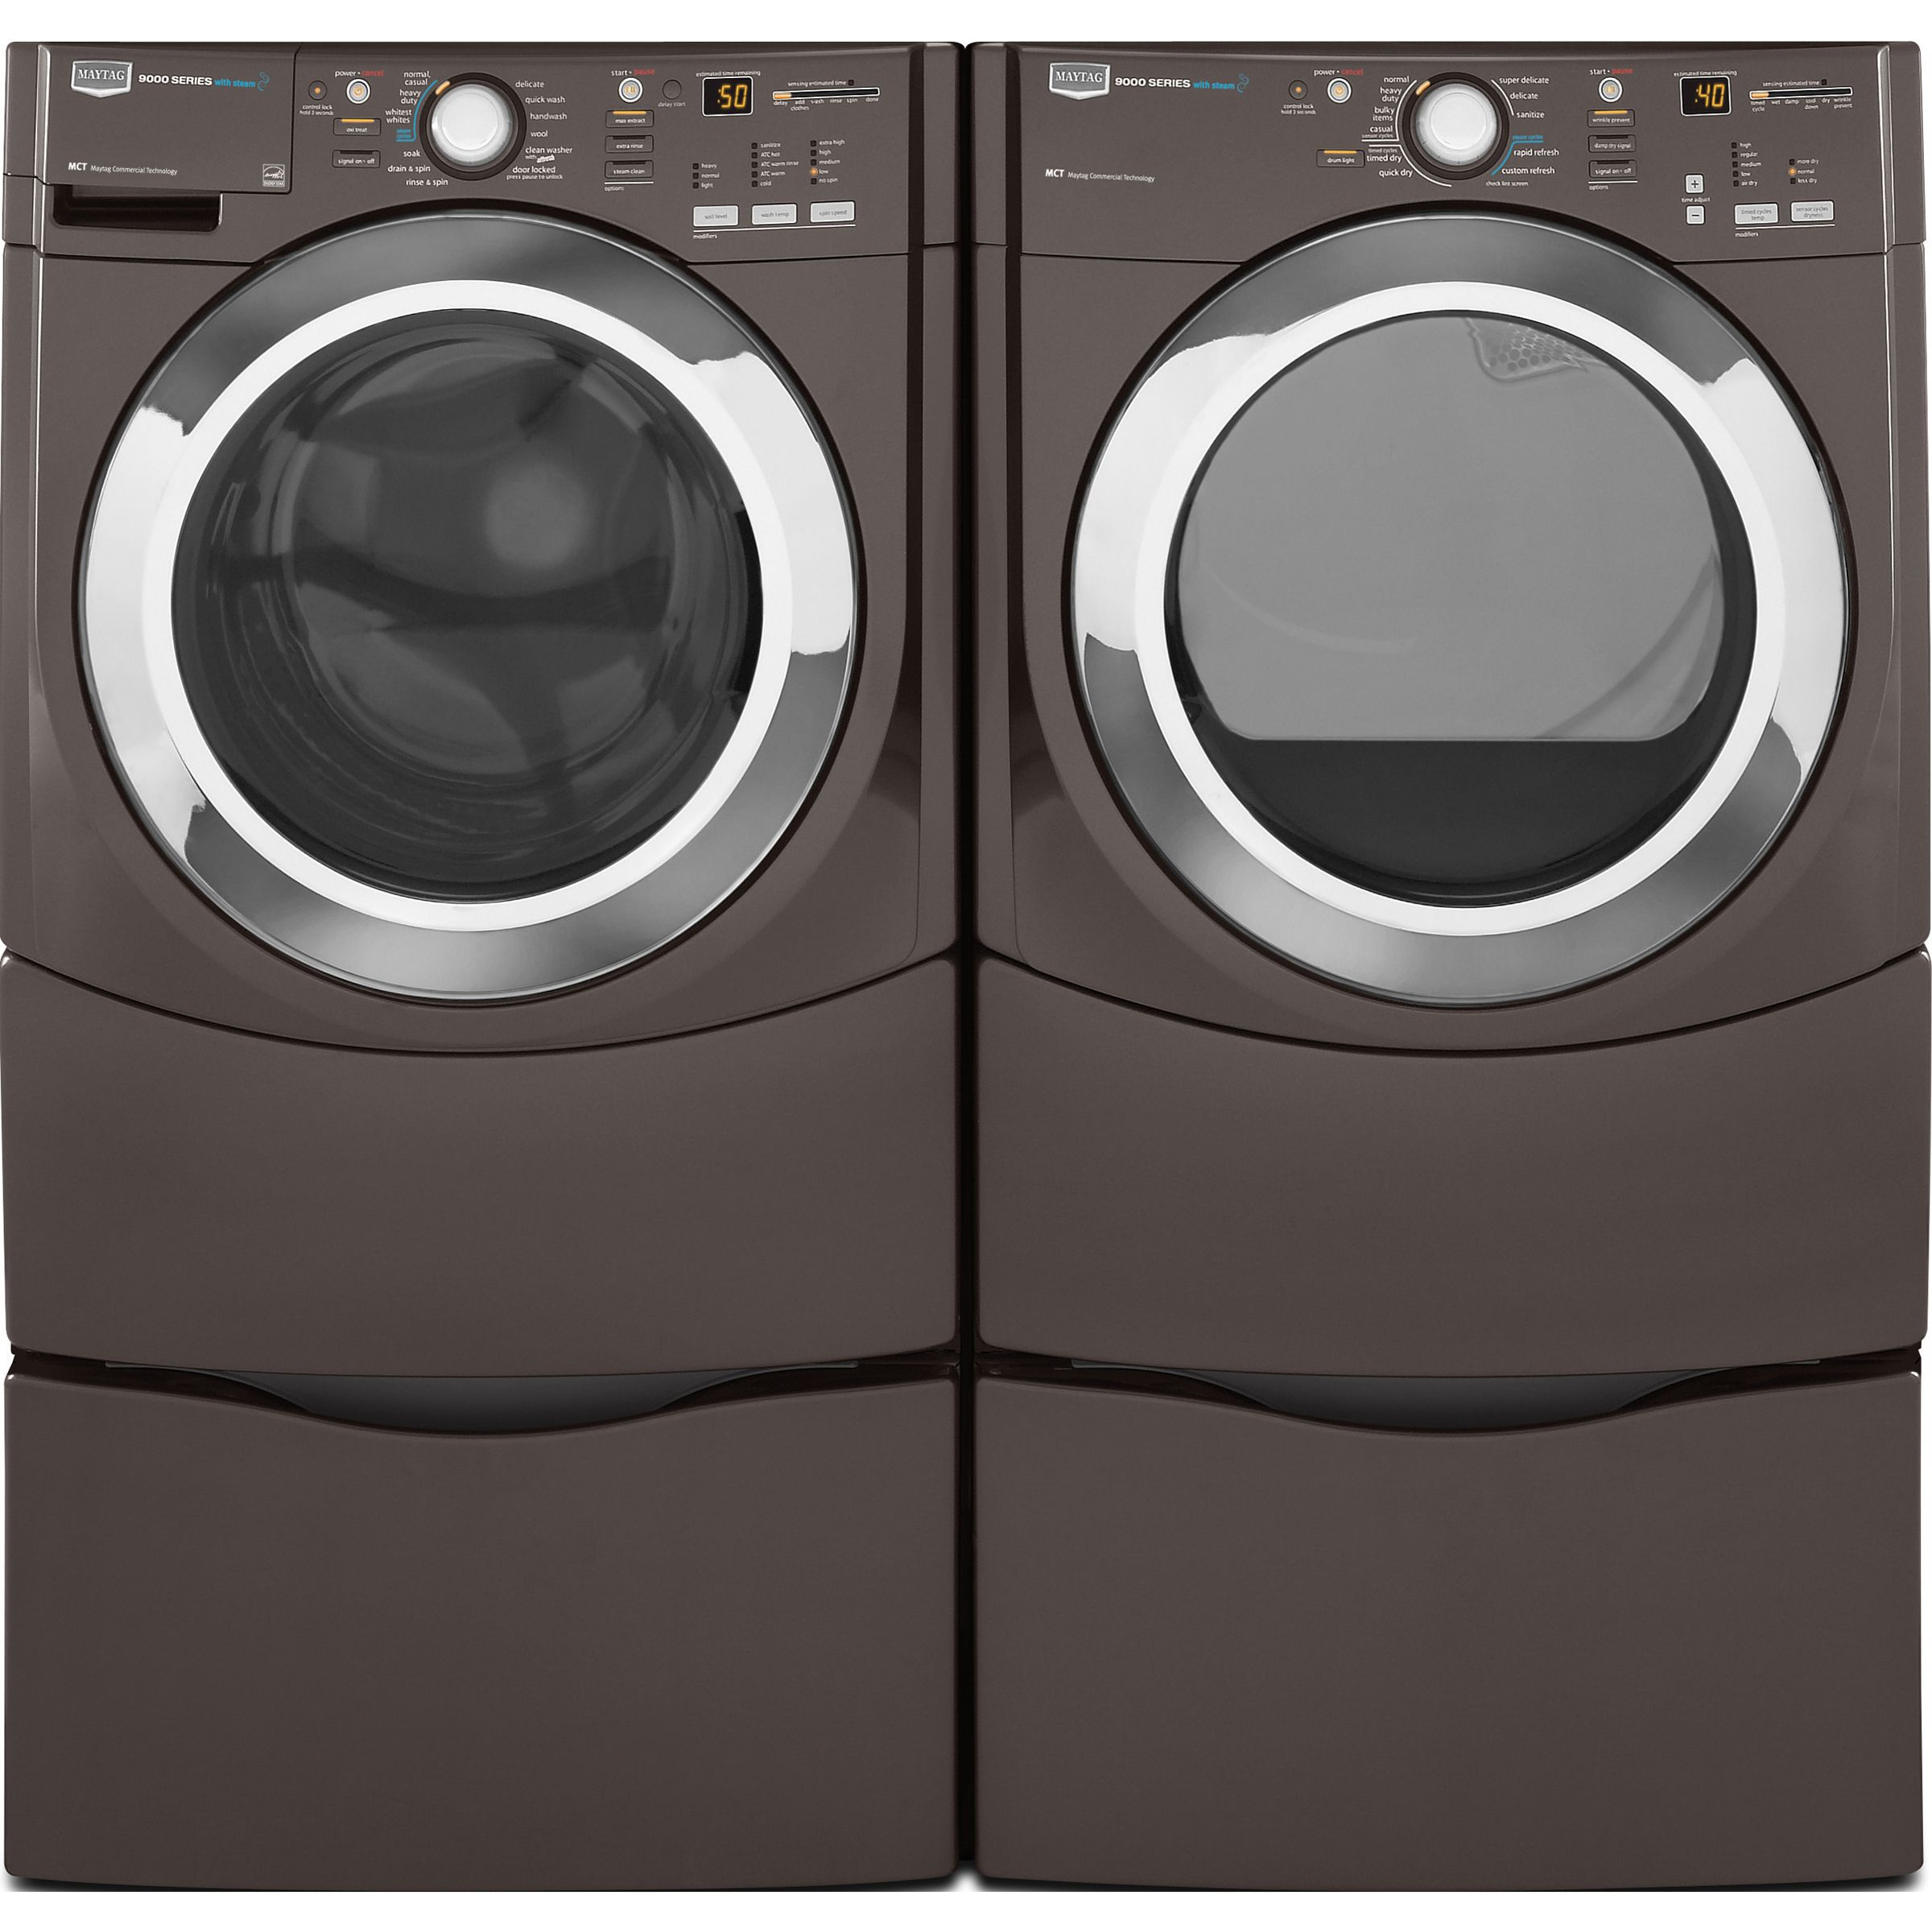 Maytag Performance Series 4.4 cu. ft. I.E.C. SuperSize Capacity Plus Front-Load Washer